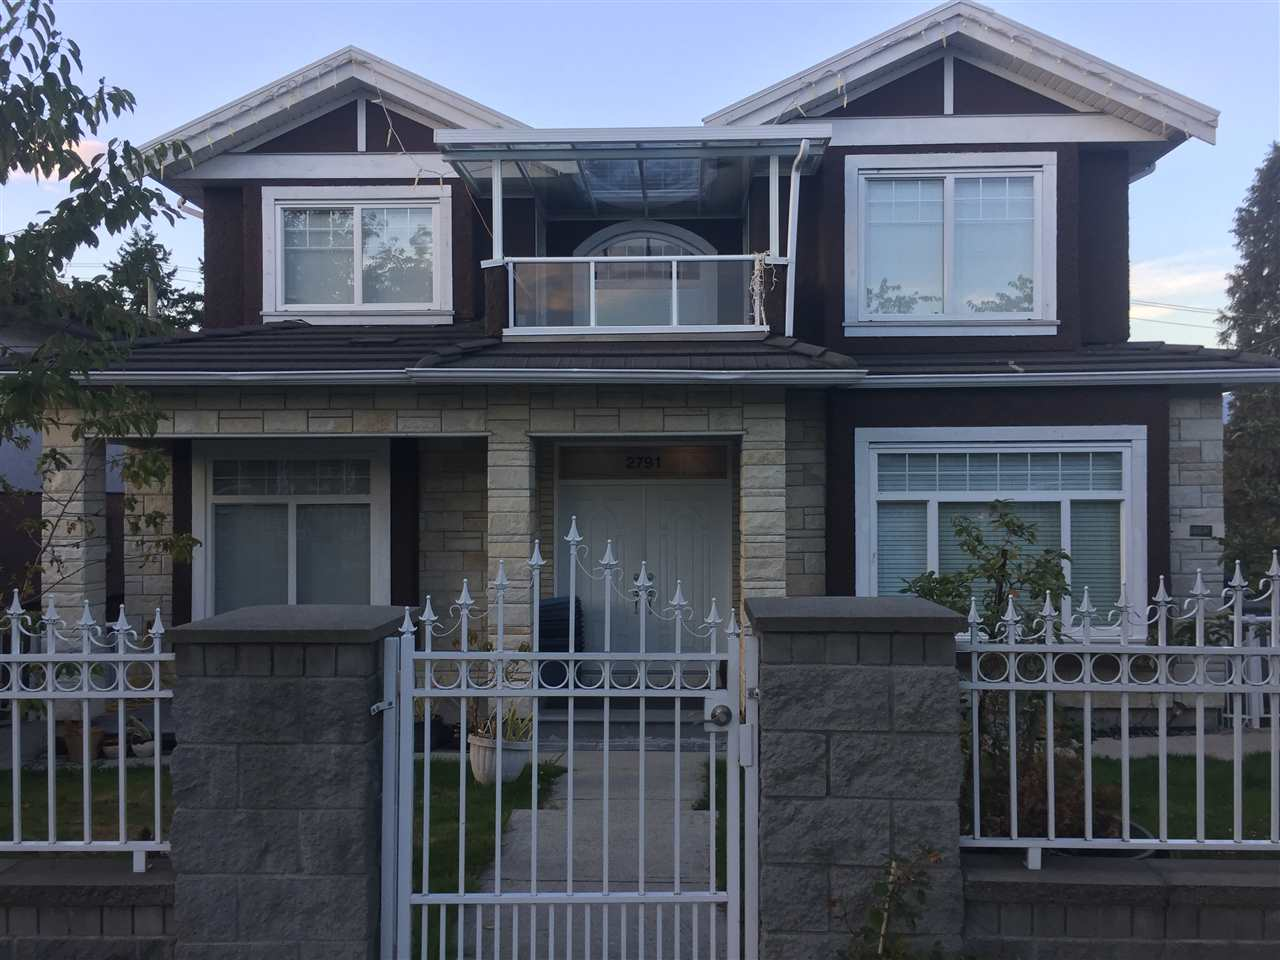 Main Photo: 2791 E 22ND Avenue in Vancouver: Renfrew Heights House for sale (Vancouver East)  : MLS® # R2212664